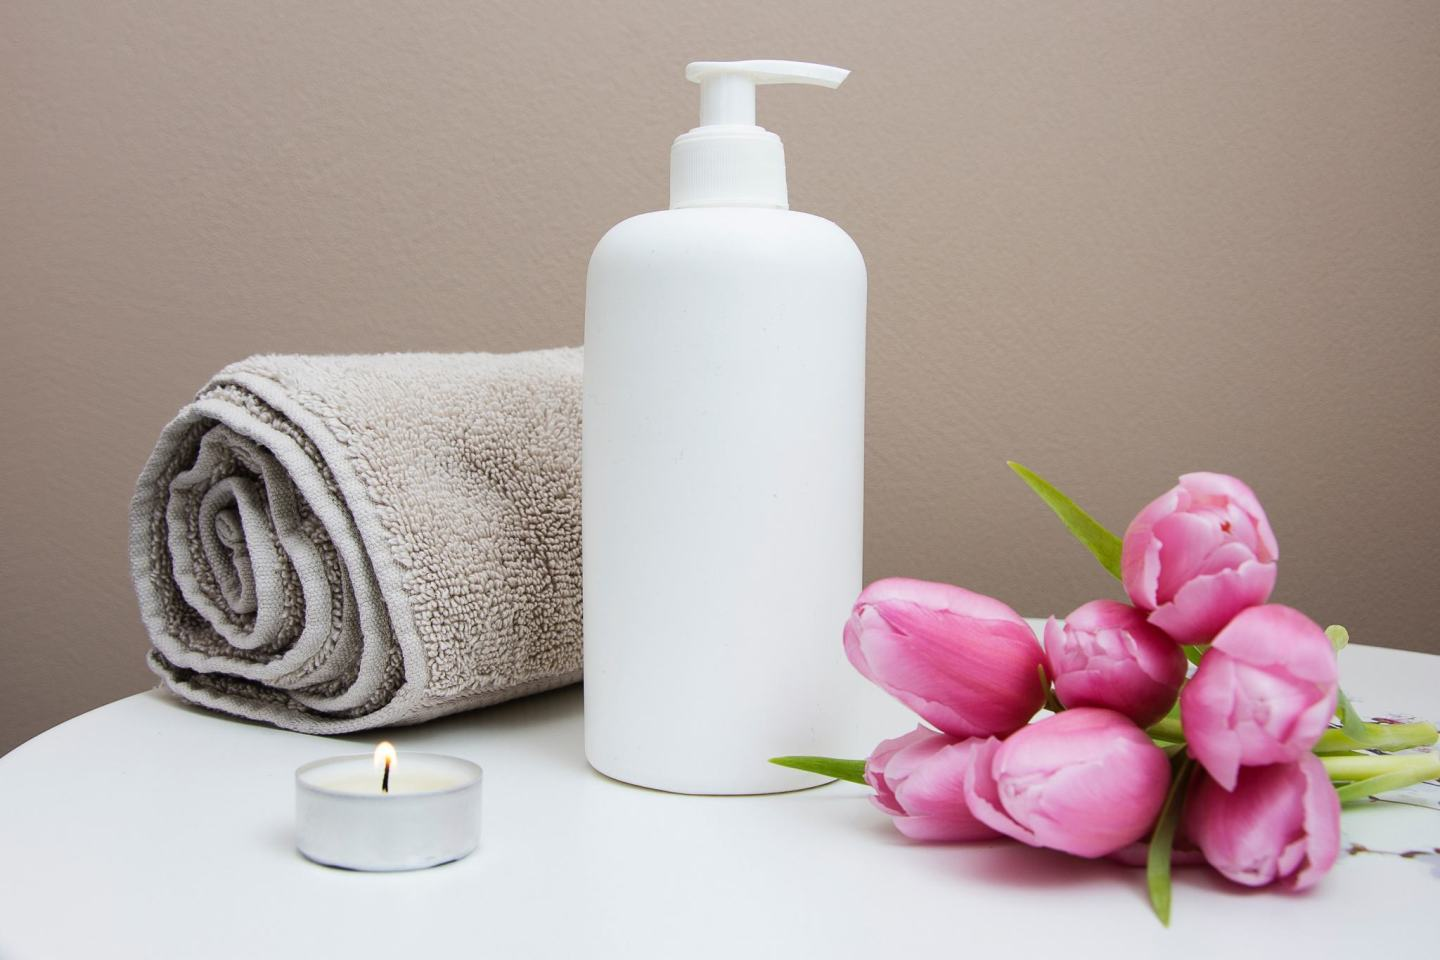 Items for luxury bathroom touches